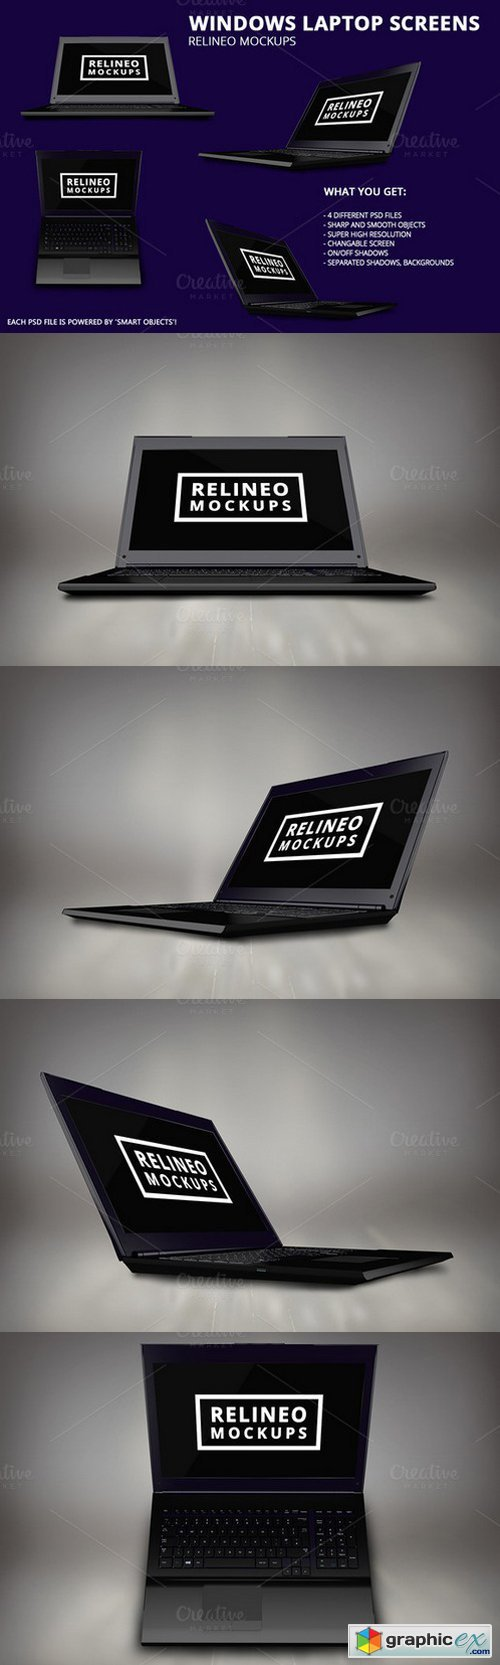 Relineo - Windows Laptop Pack #1